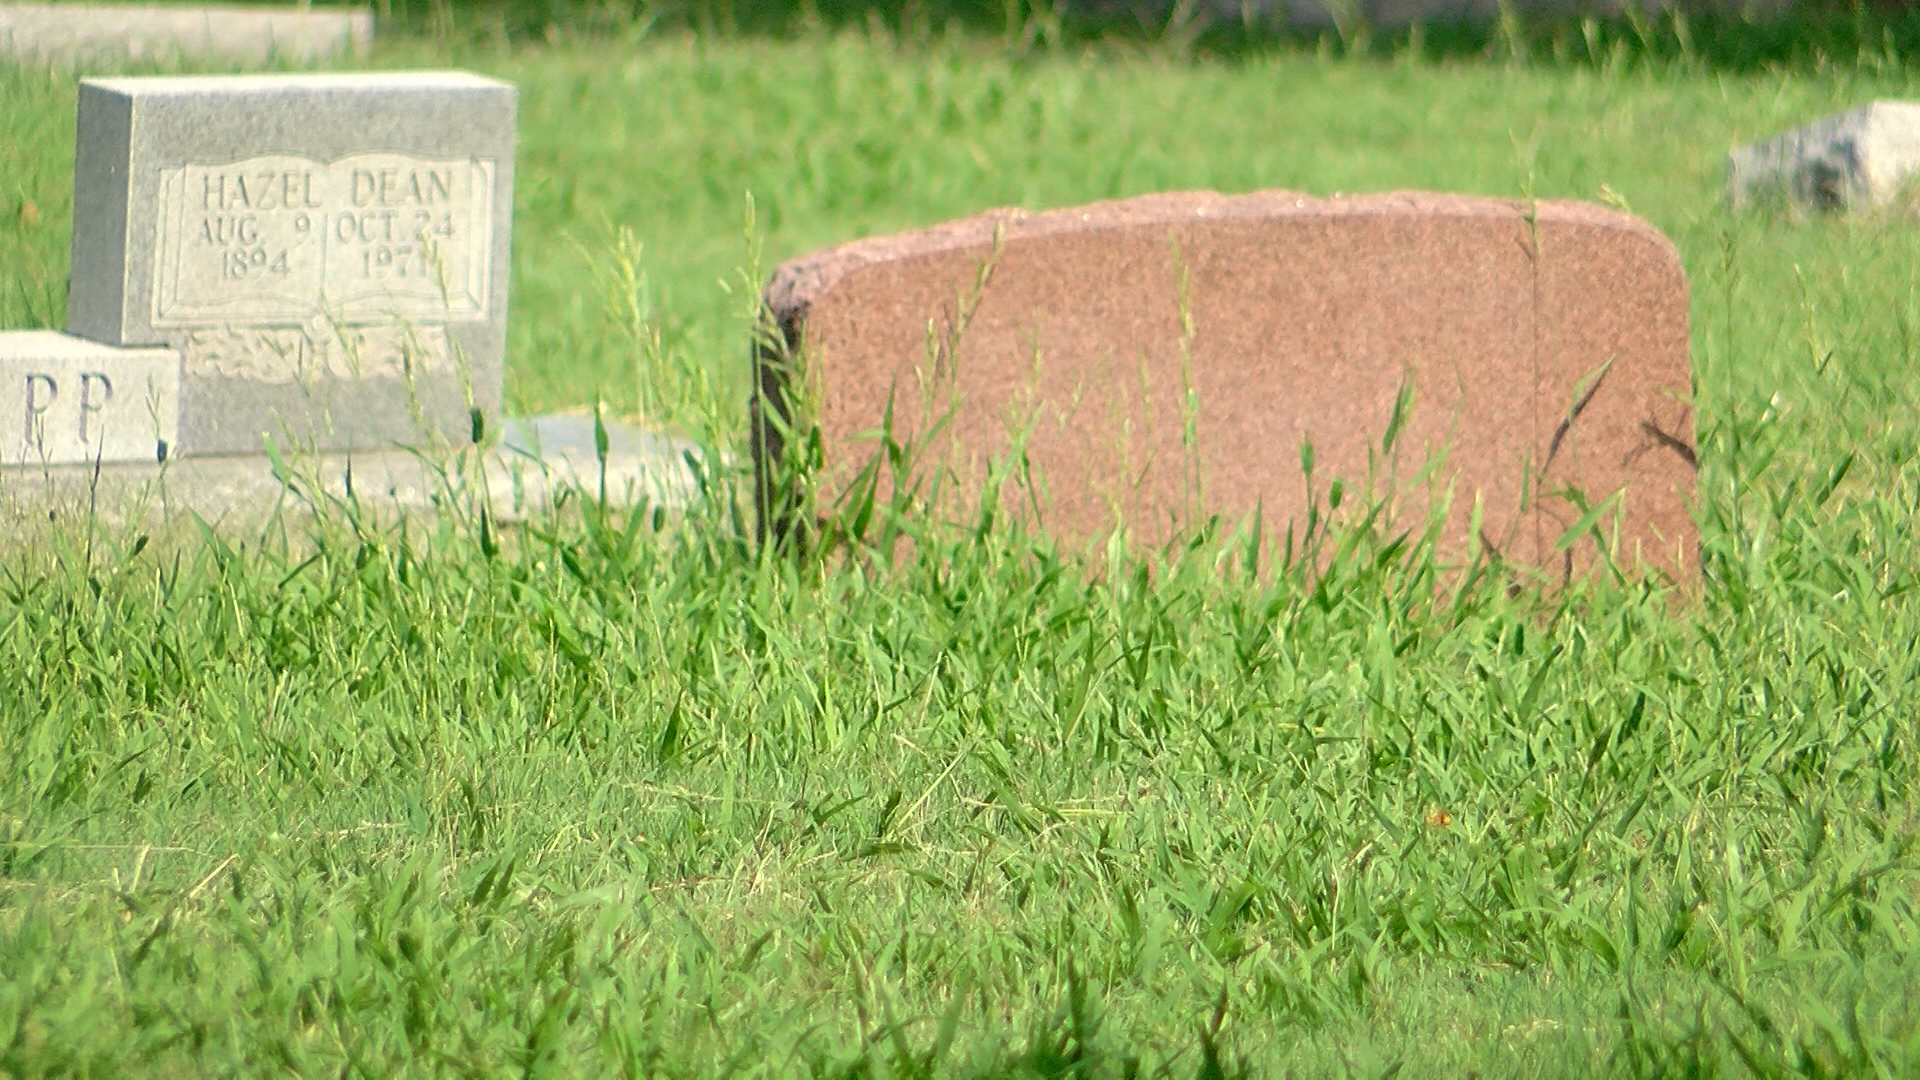 Some Wichita Falls residents are expressing concern regarding the condition of area cemeteries